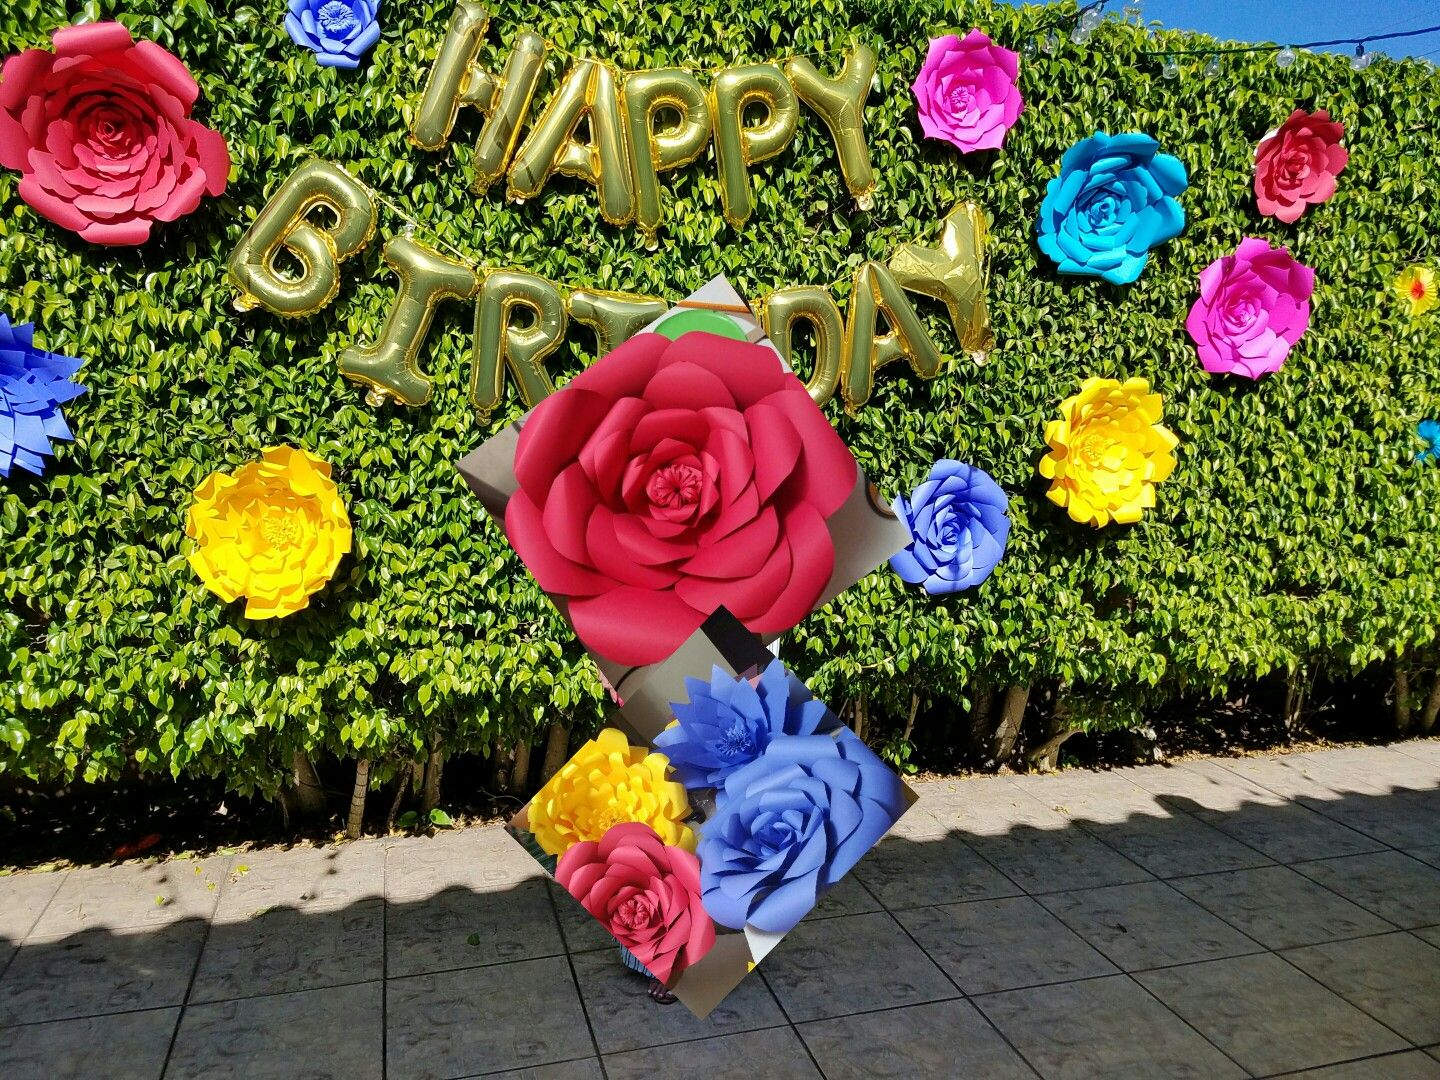 Paper flowers birthday party june 2017 party duzell decorations paper flowers birthday party june 2017 izmirmasajfo